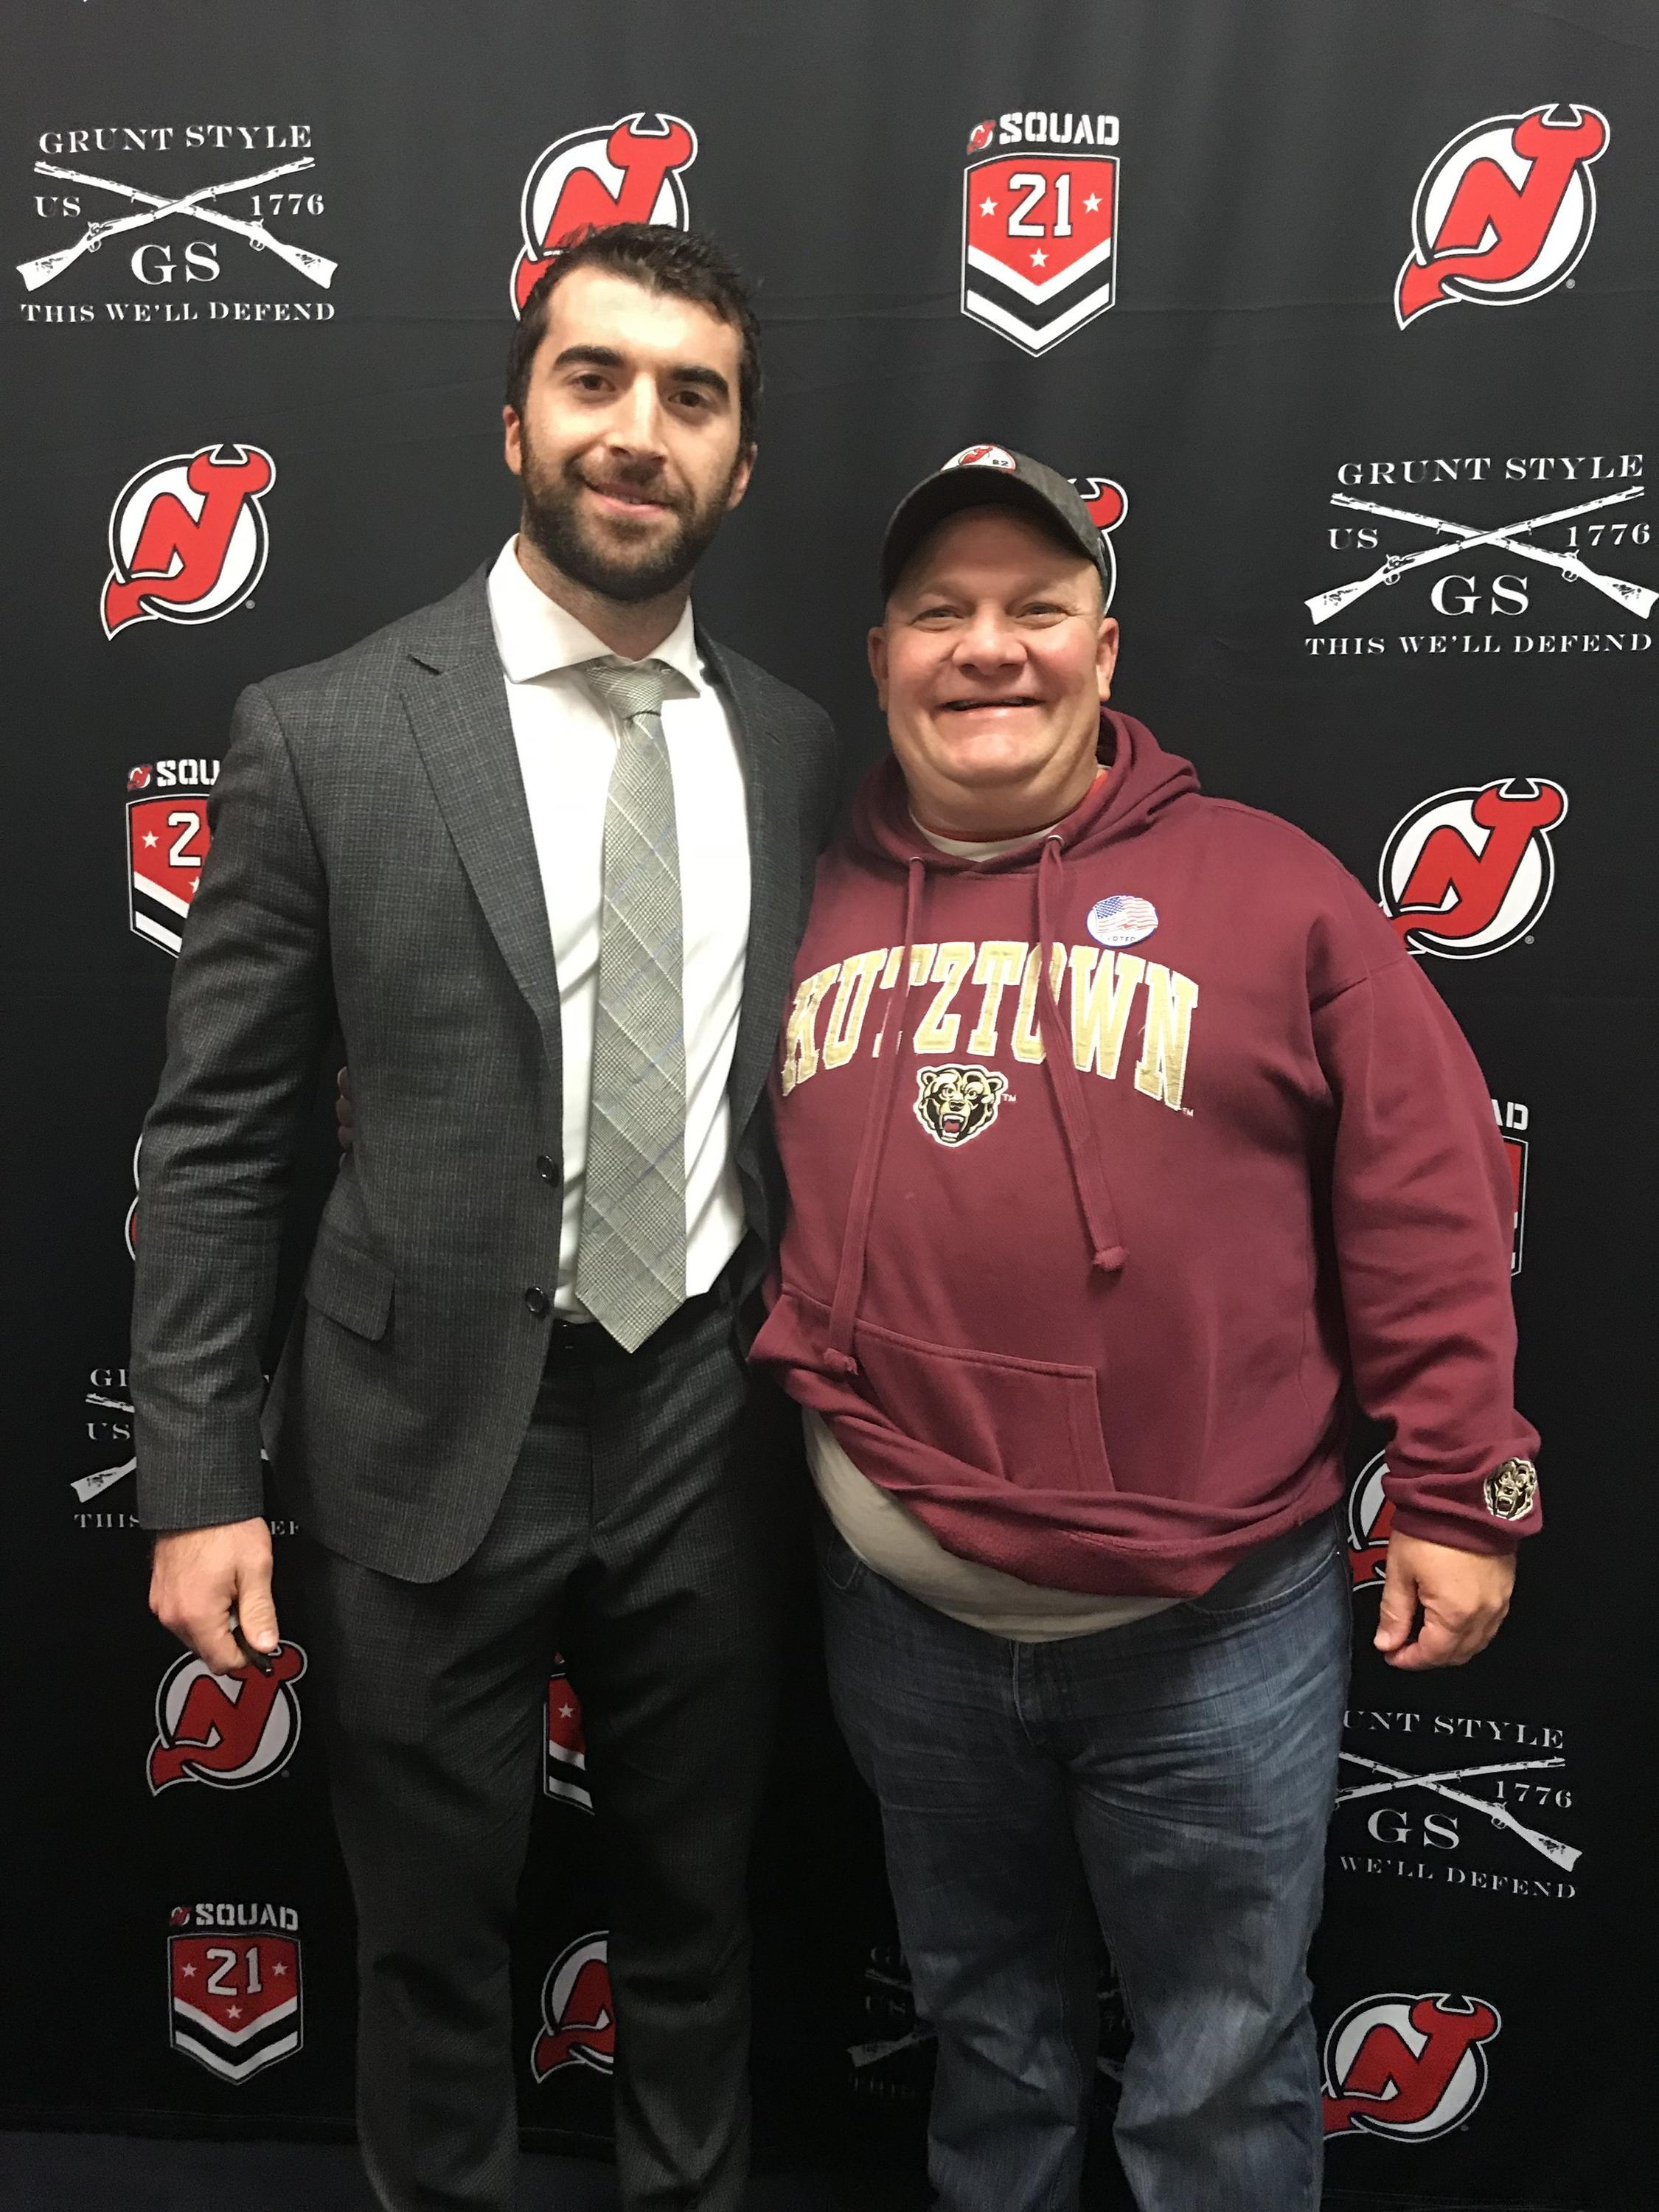 Thank you messages to veteran tickets foundation donors paul attended new jersey devils vs st louis blues nhl 21 squad m4hsunfo